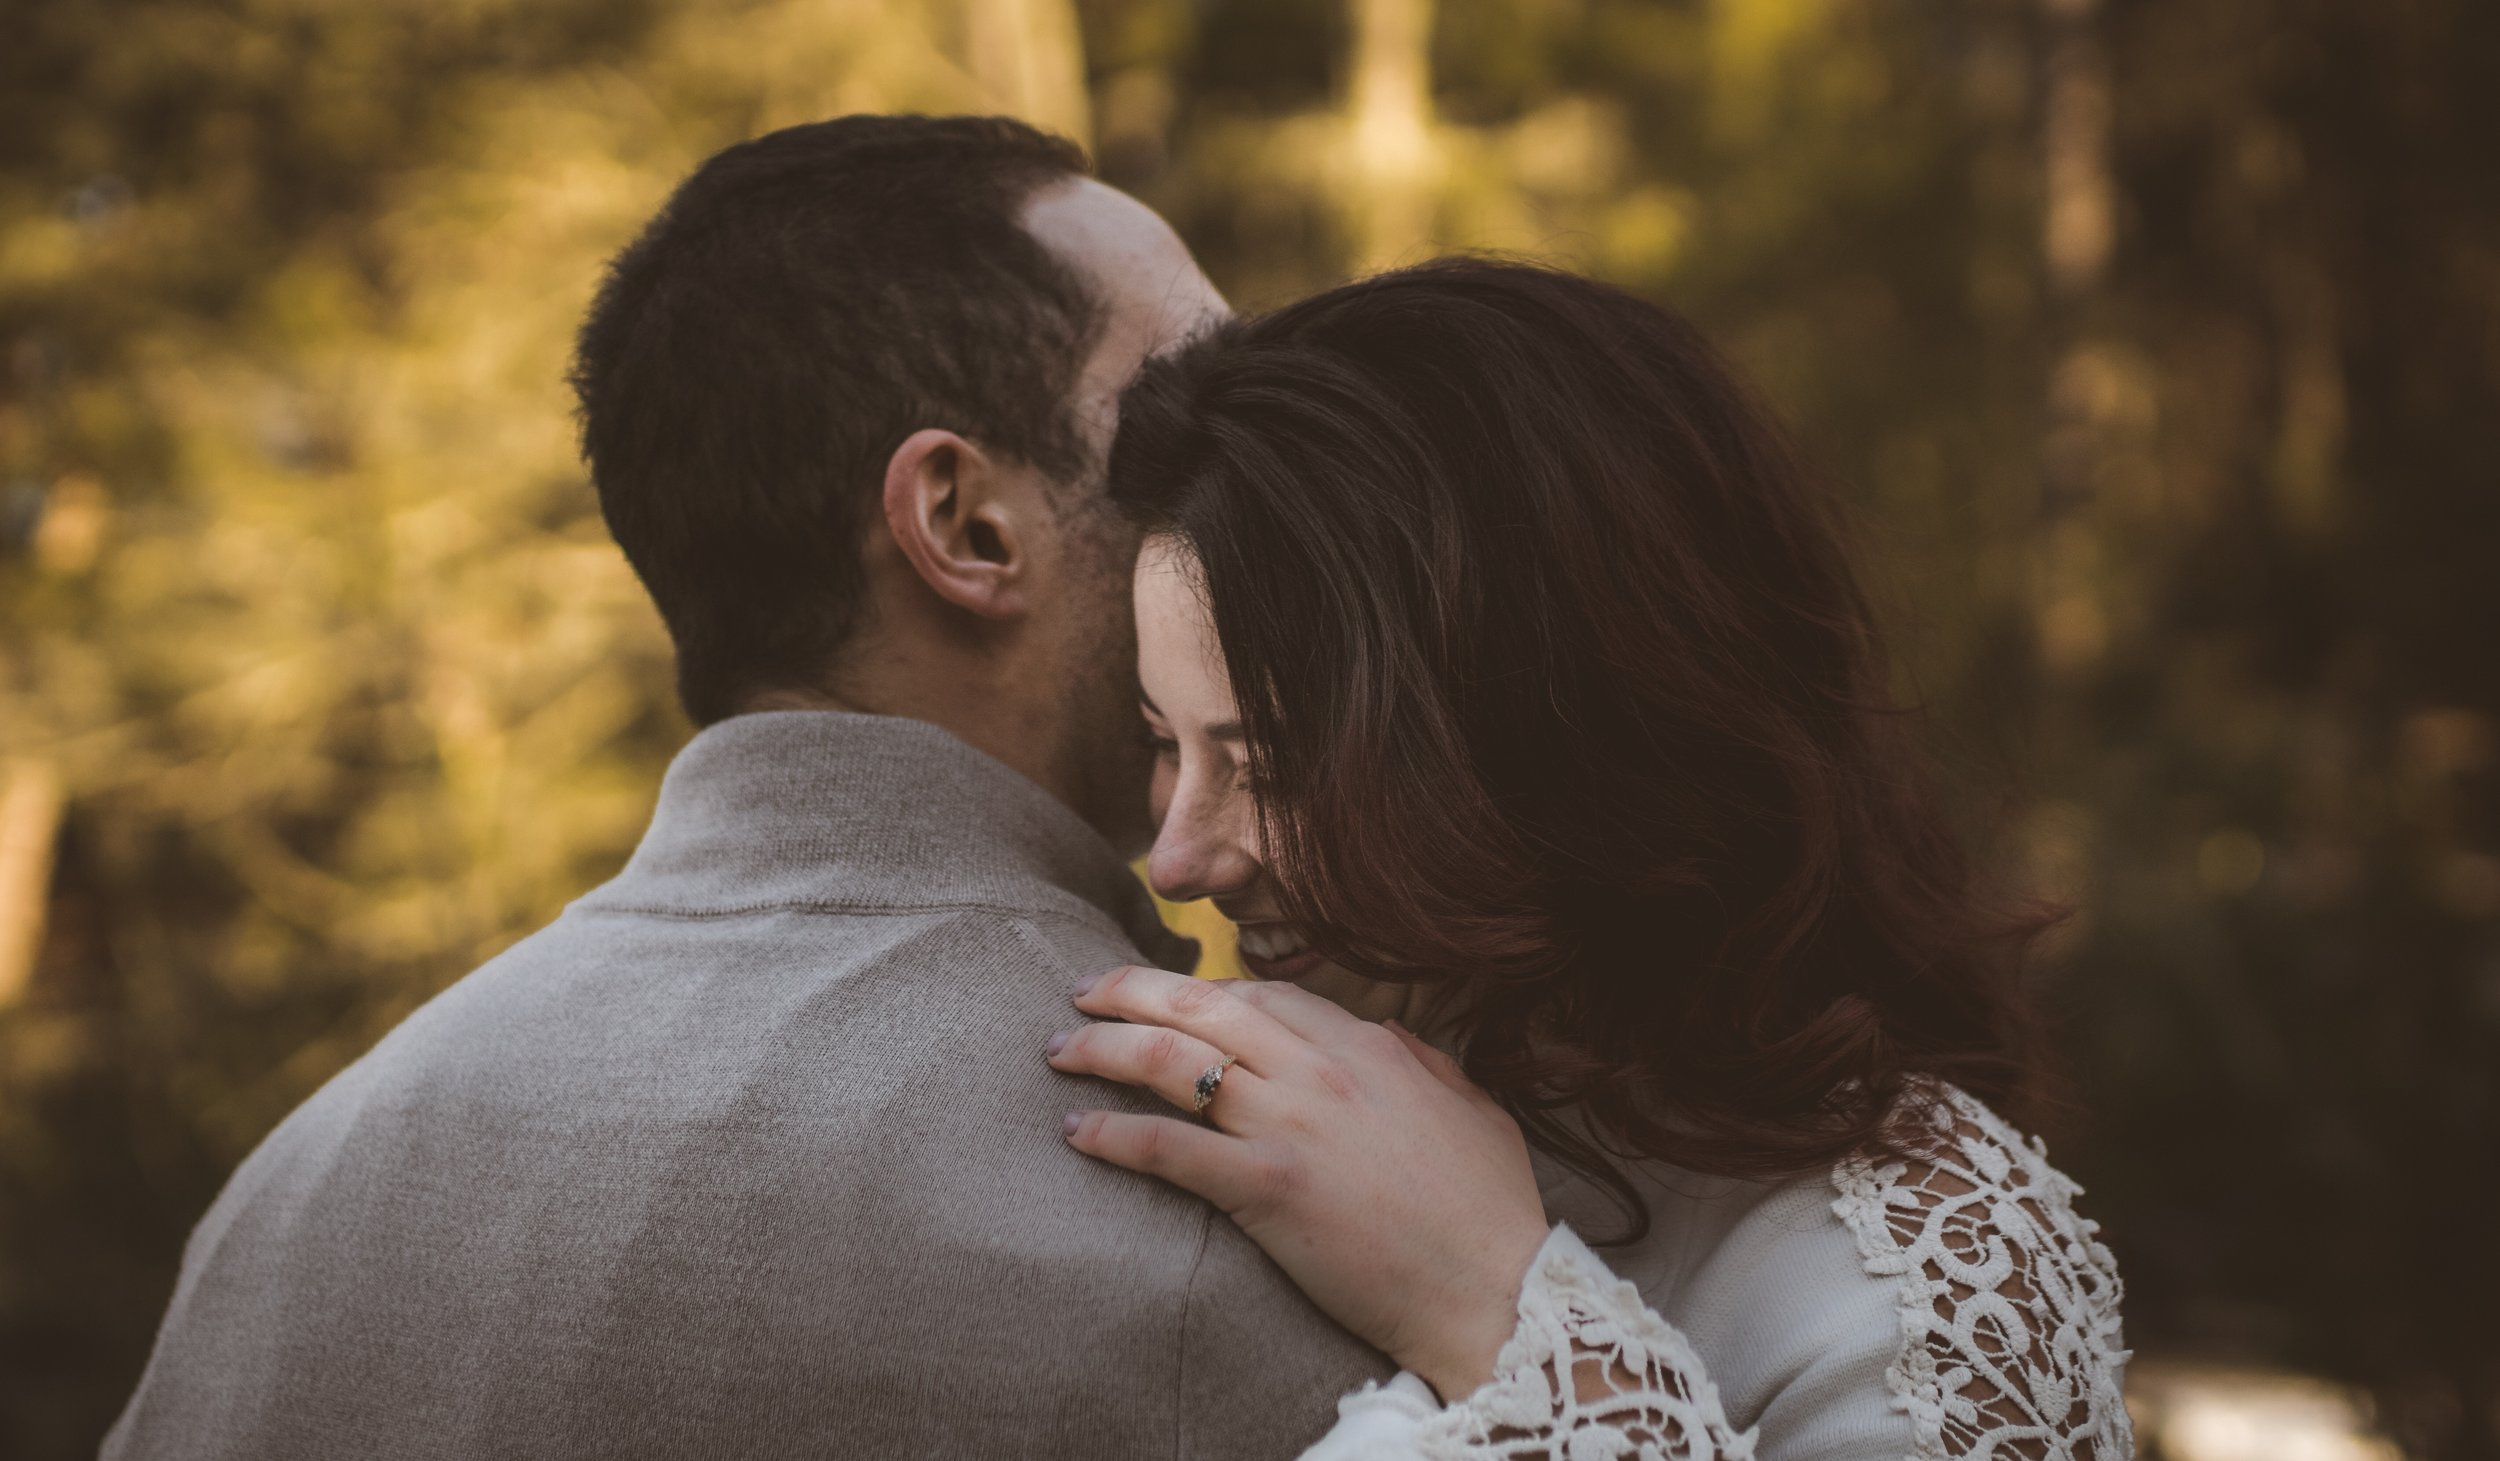 Feel disconnected from your partner?Seeking better communication?Want to reignite the spark? -